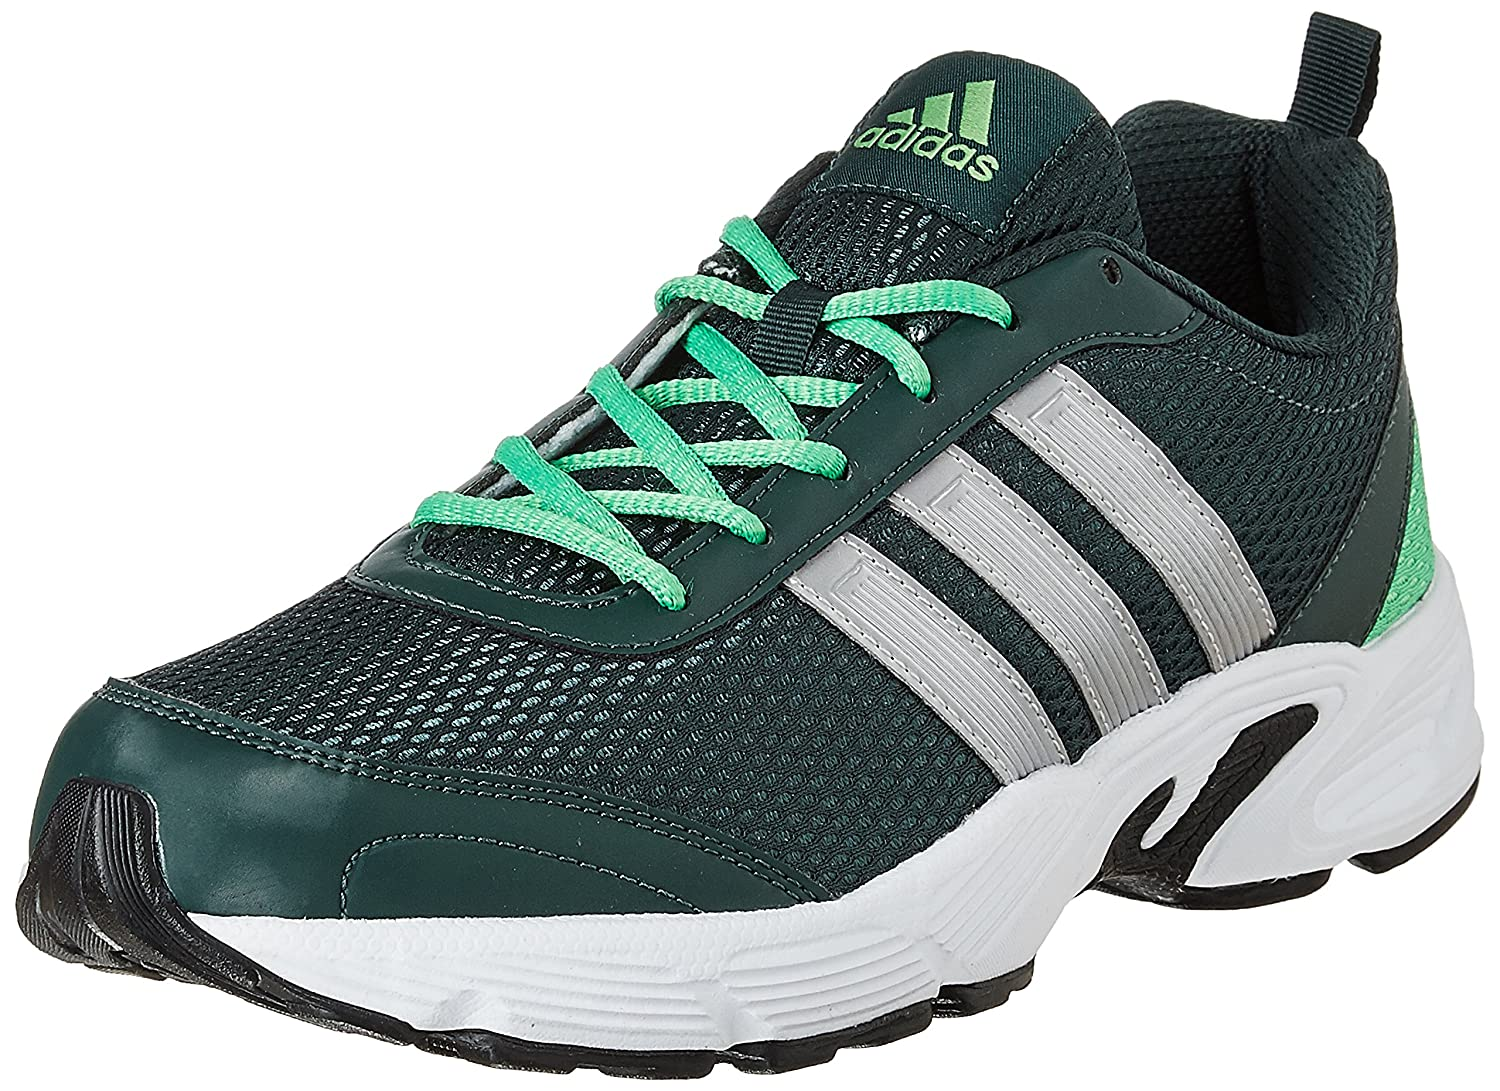 adidas Men's Albis 1.0 M Running Shoes: Buy Online at Low Prices in India -  Amazon.in